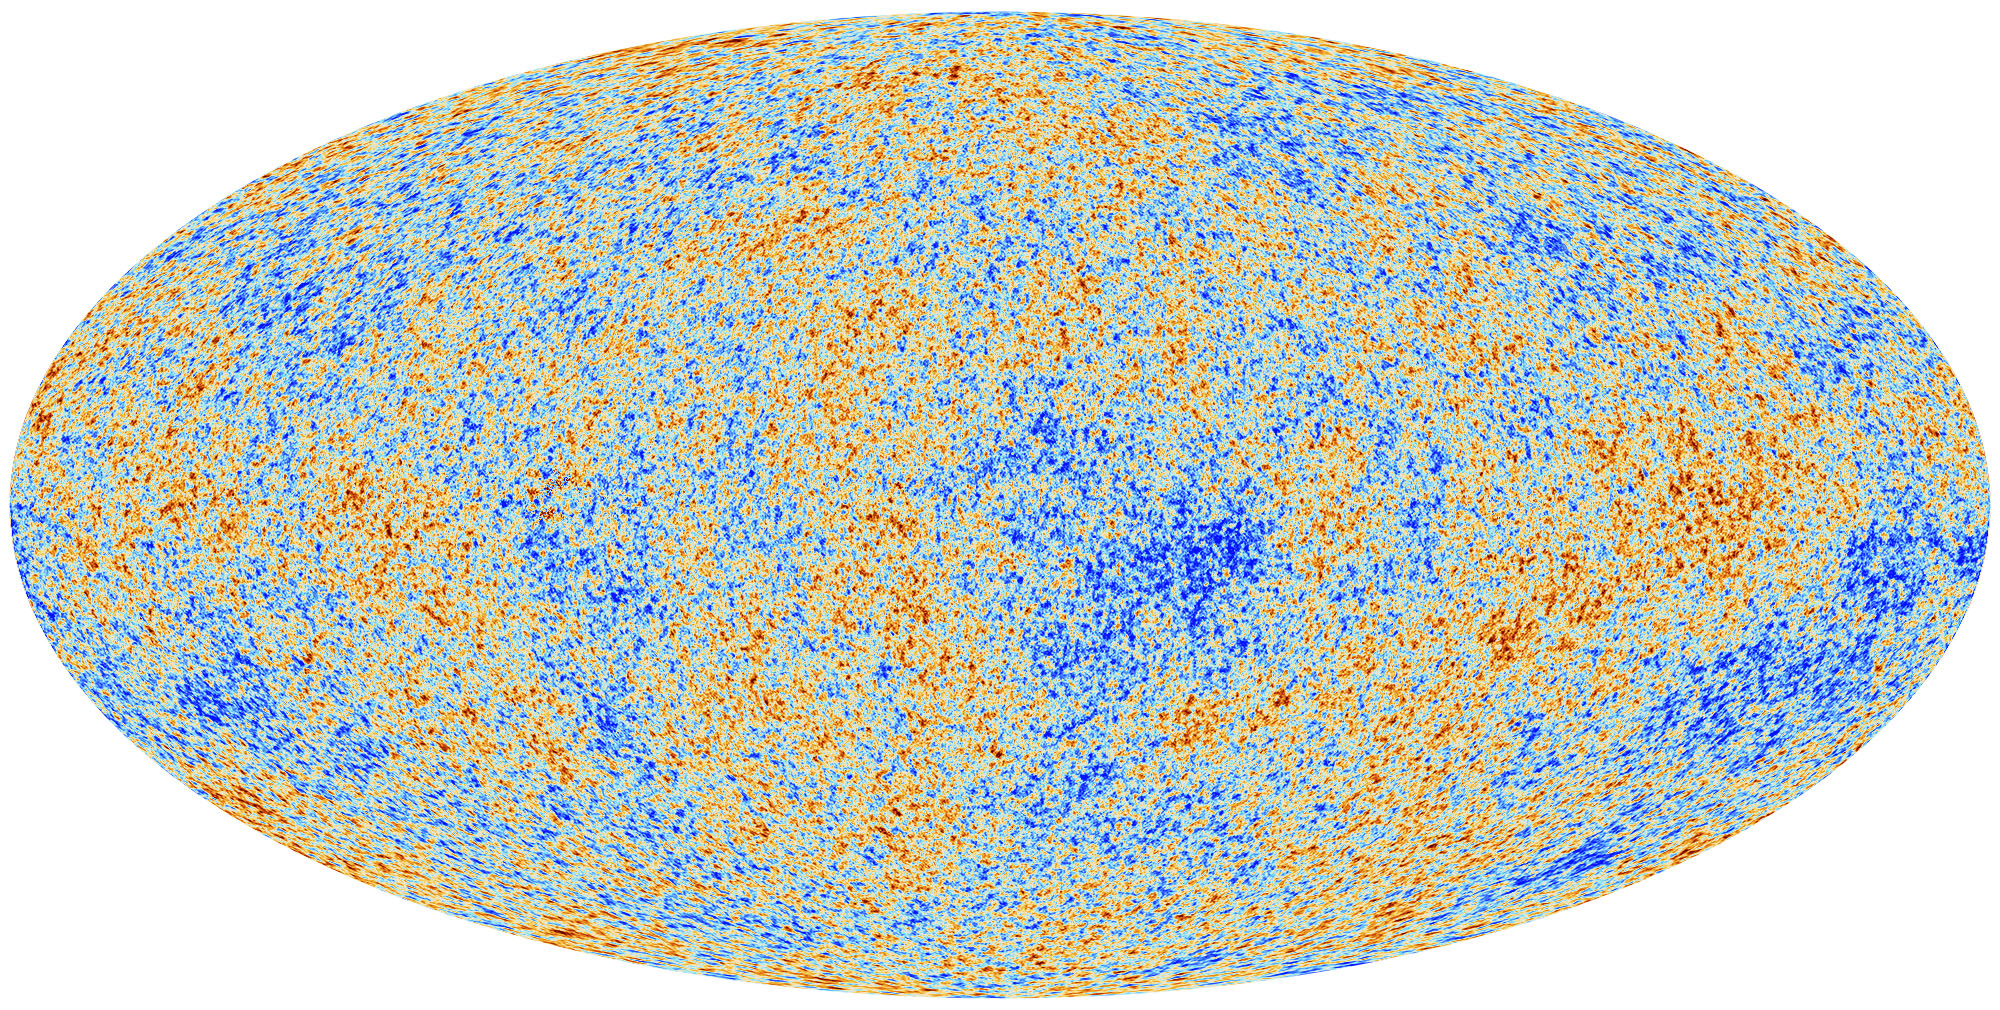 Planck's All-Sky Map: Cosmic Microwave Background